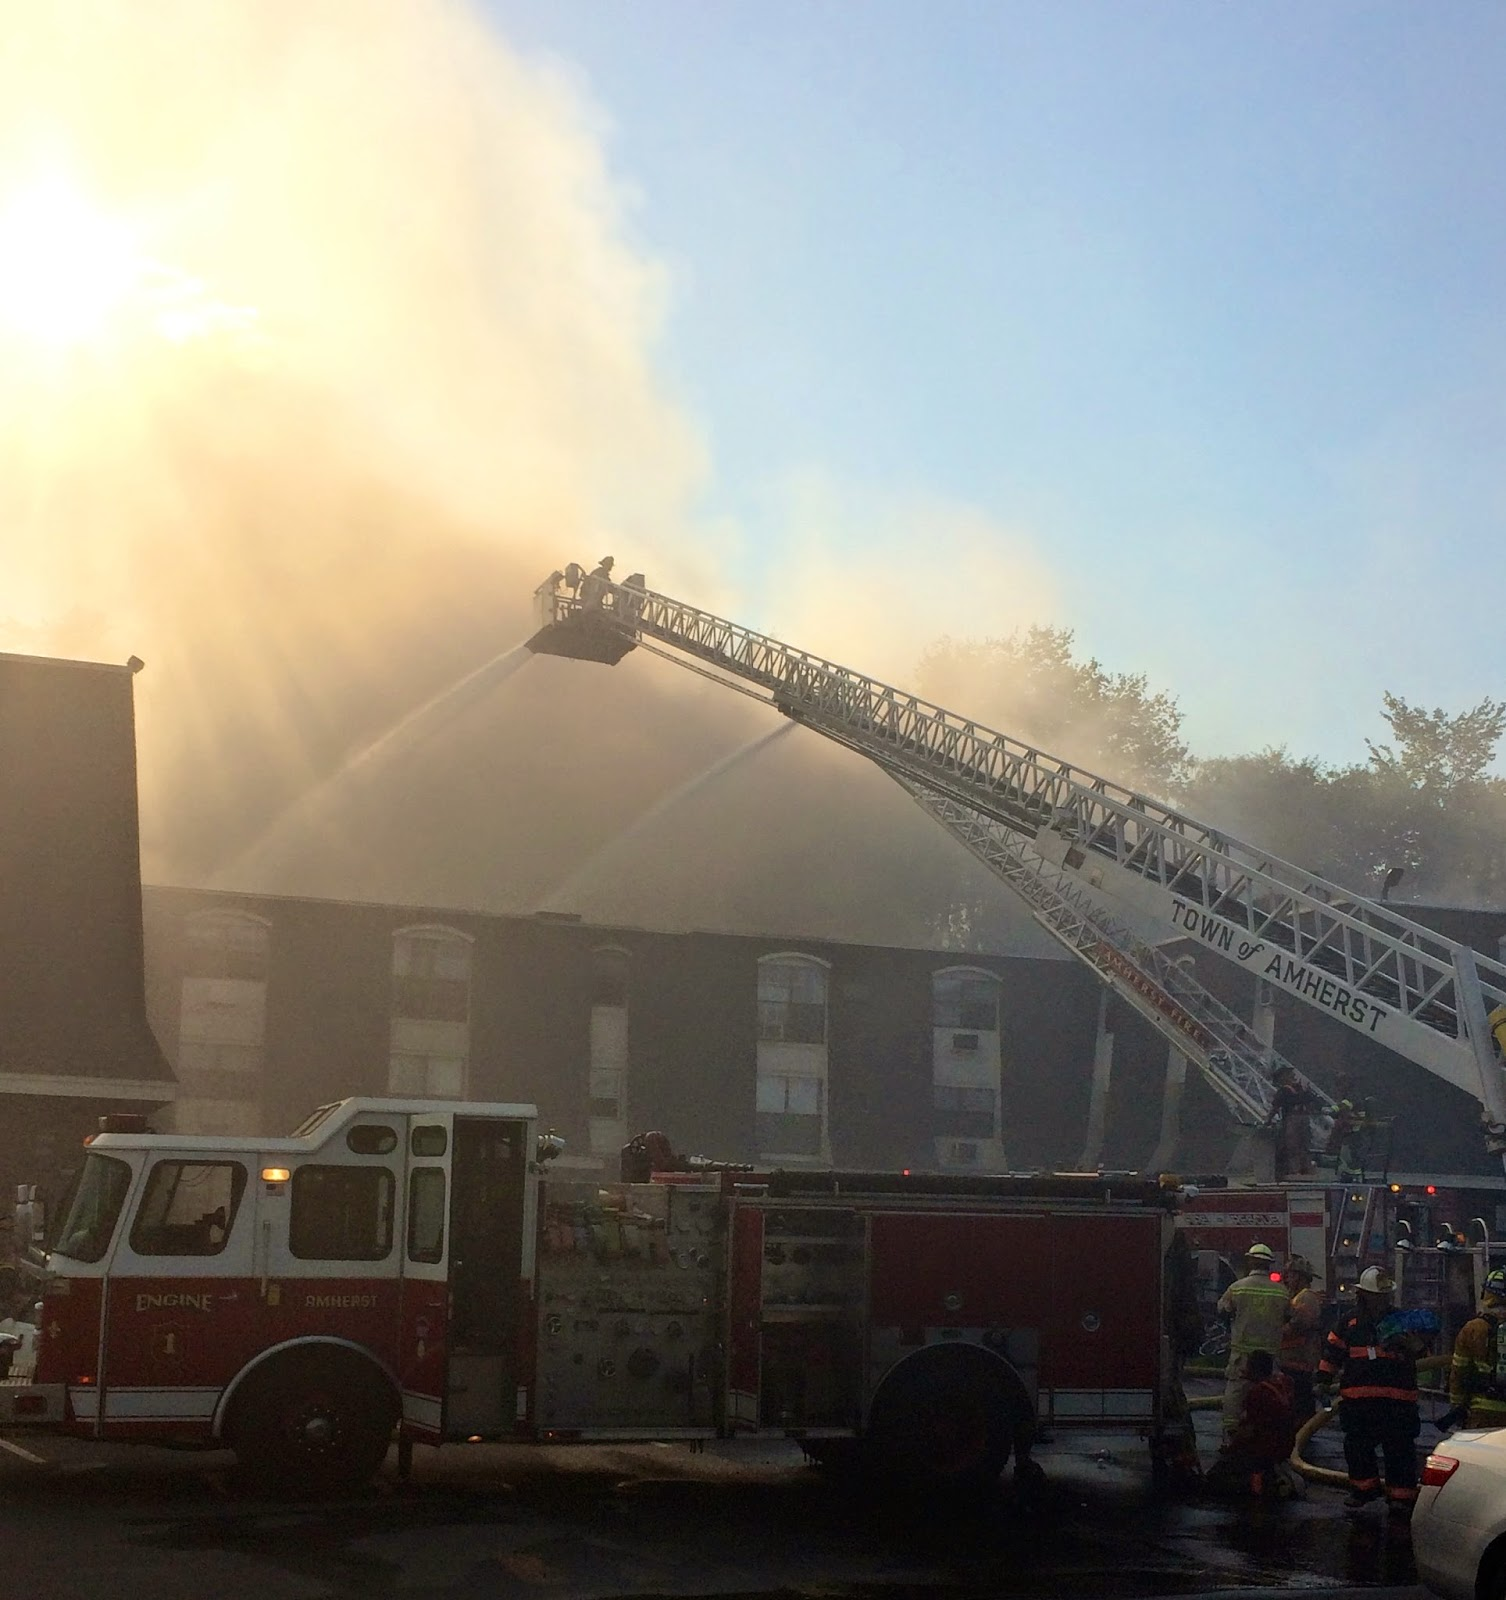 Southpoint Apartments: Only In The Republic Of Amherst: Fireground Southpoint